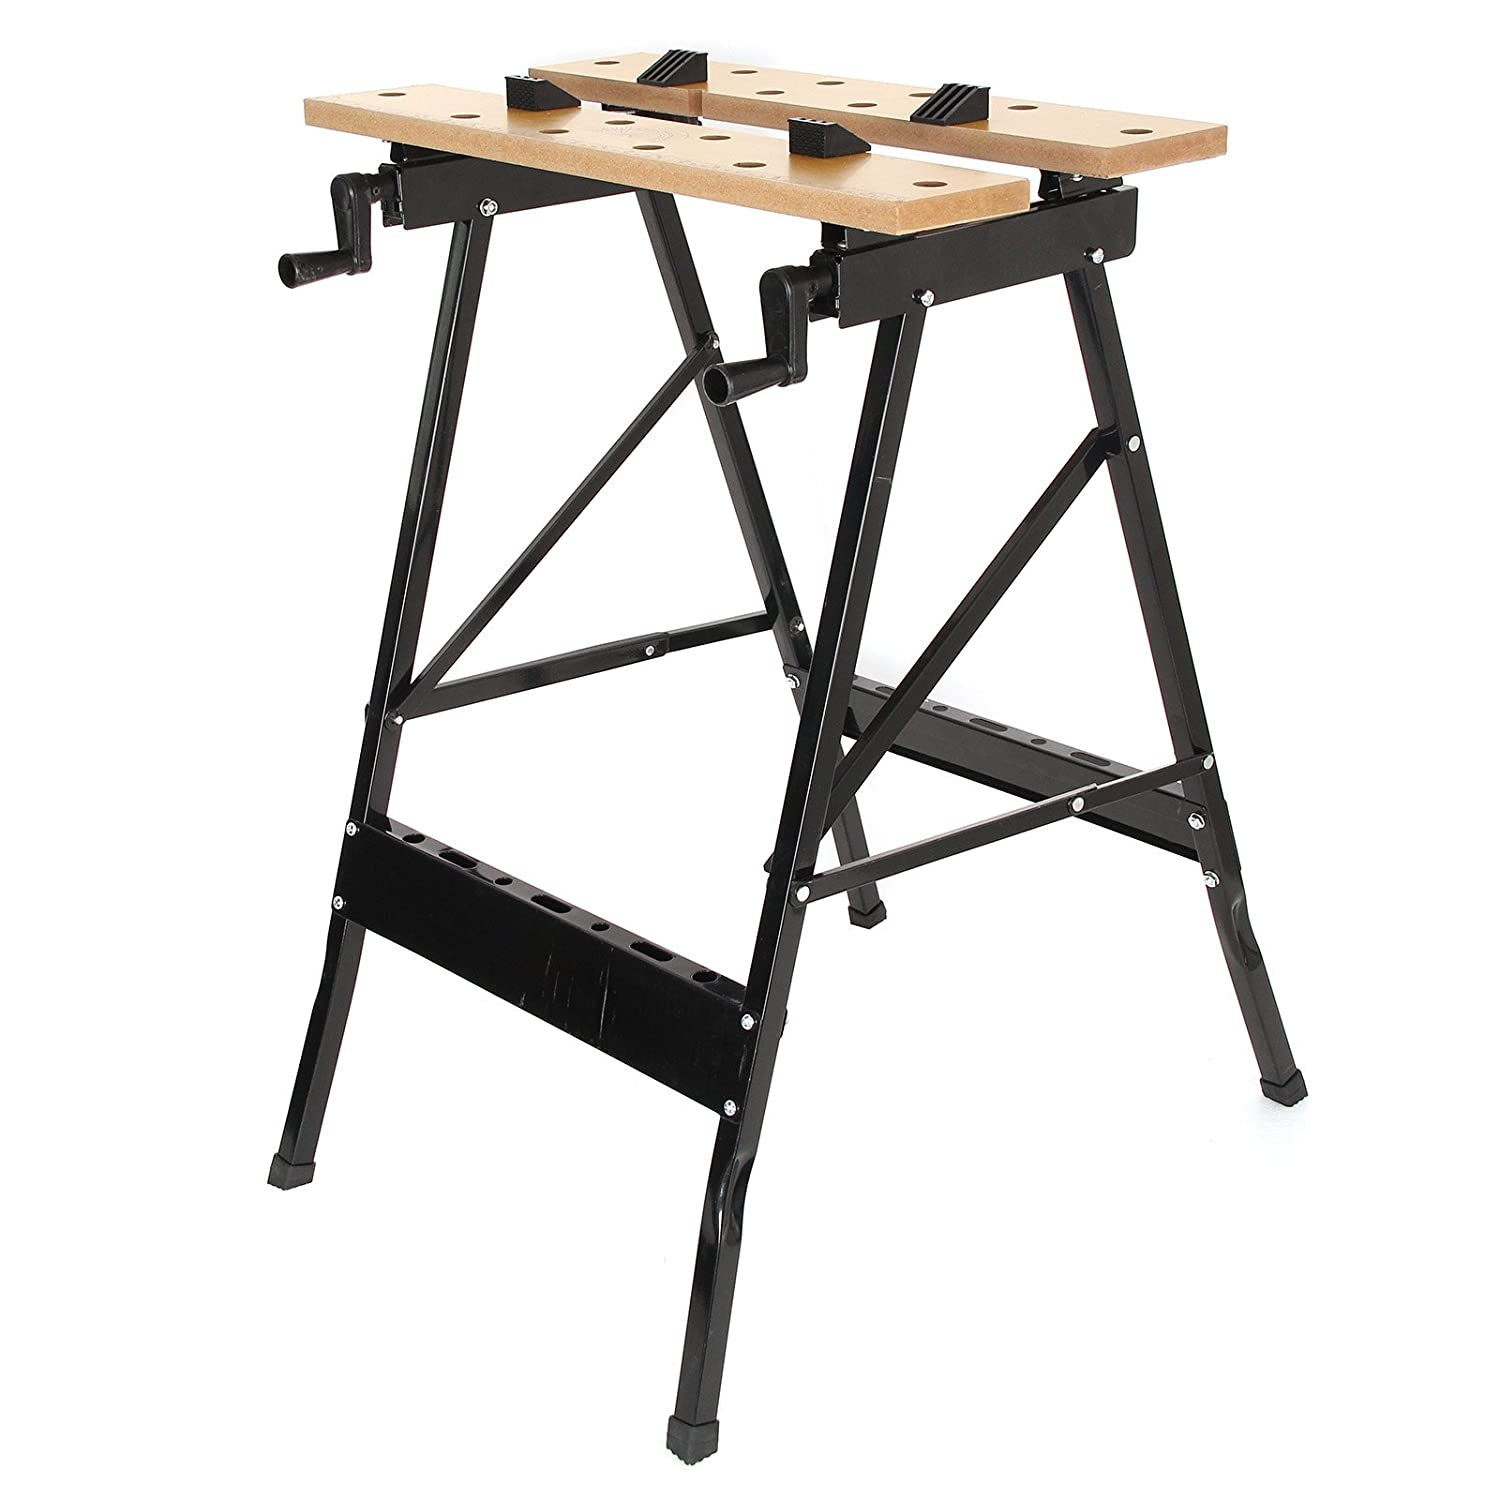 10.5cm Portable Work Clamping Folding Worktop Table Foldable Workbench 88 12.5